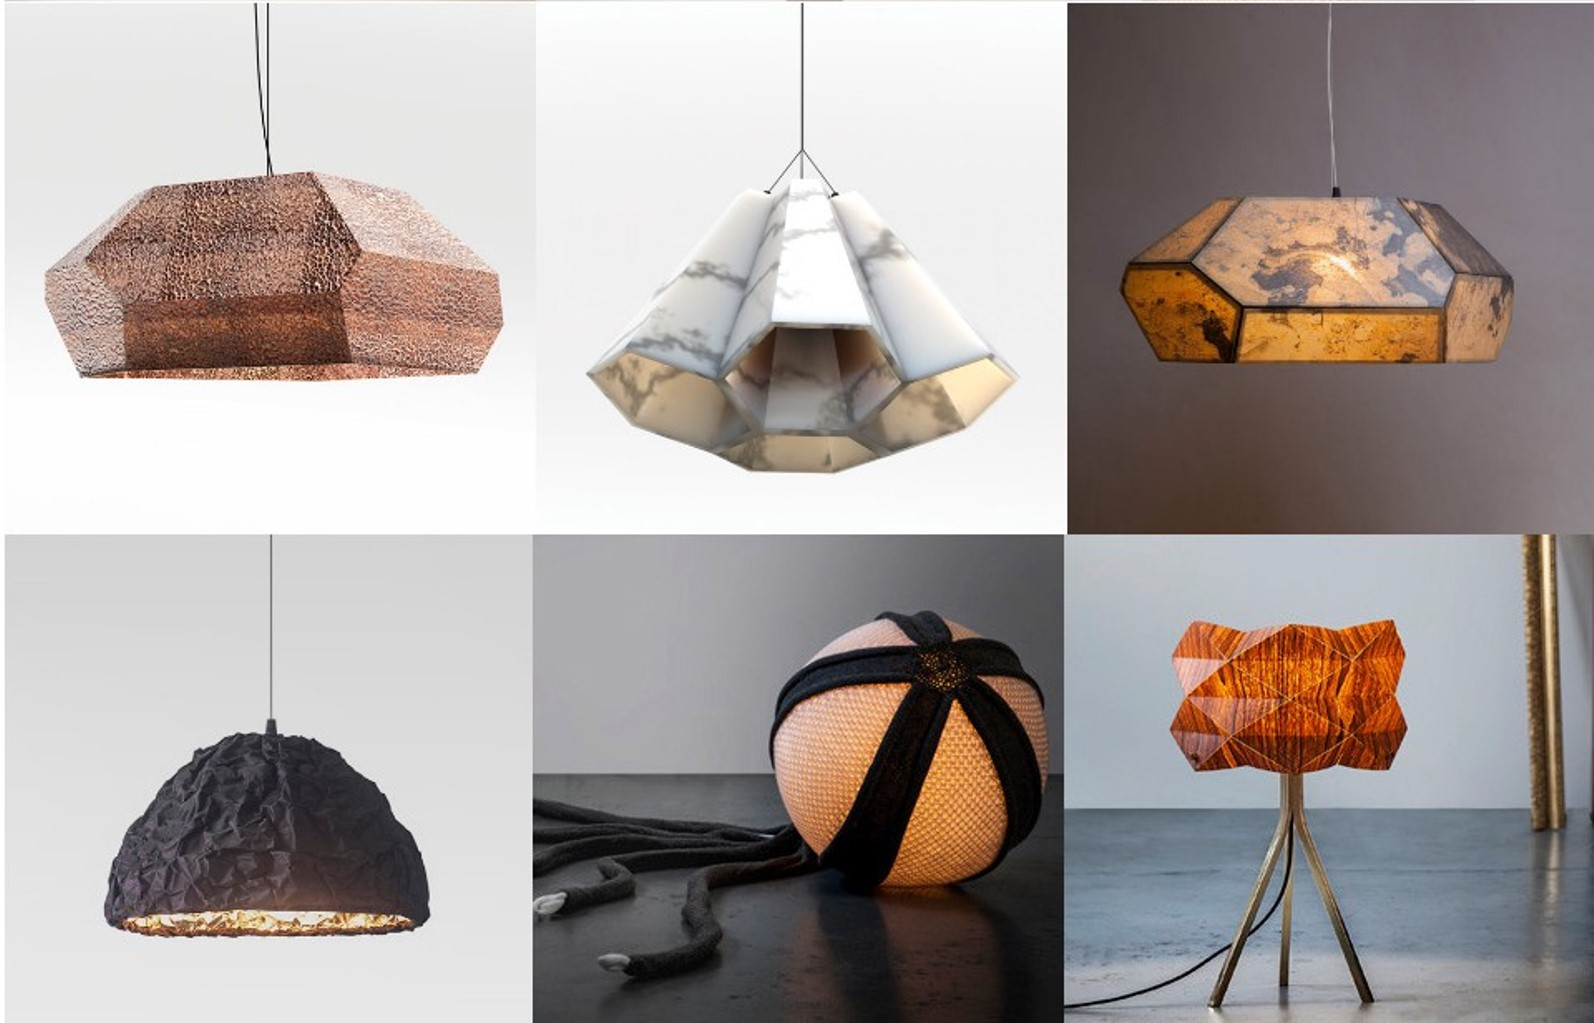 Light Fixtures By Ariel Zuckerman. Photo: Courtesy